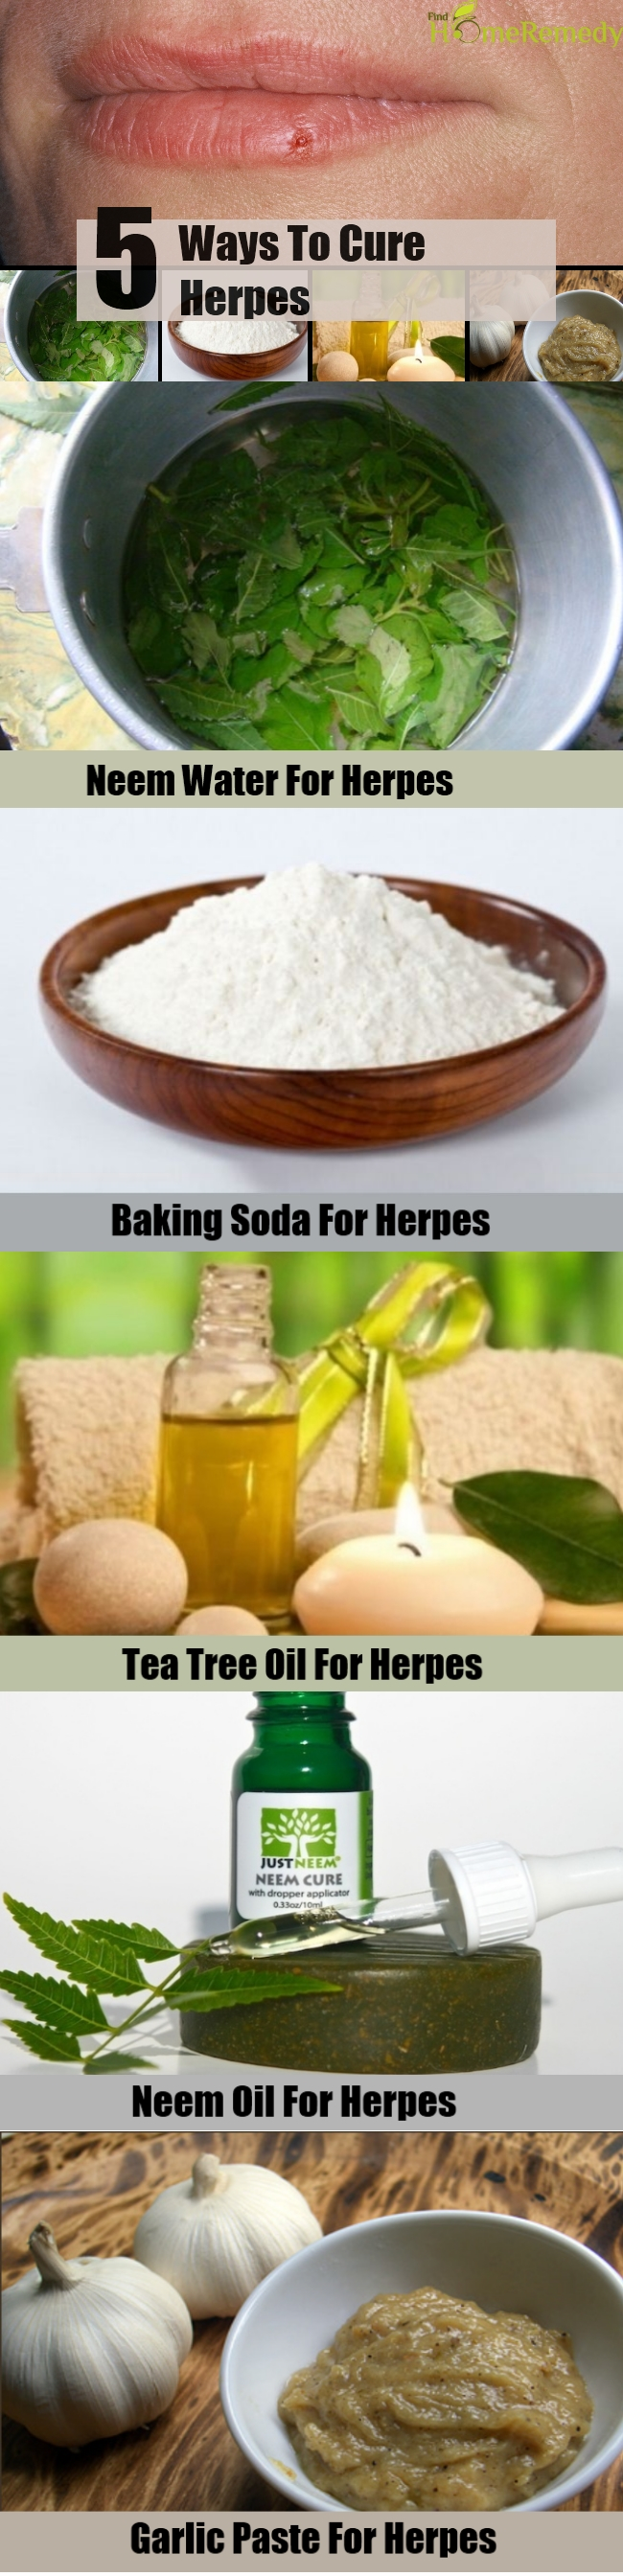 5 Ways To Cure Herpes